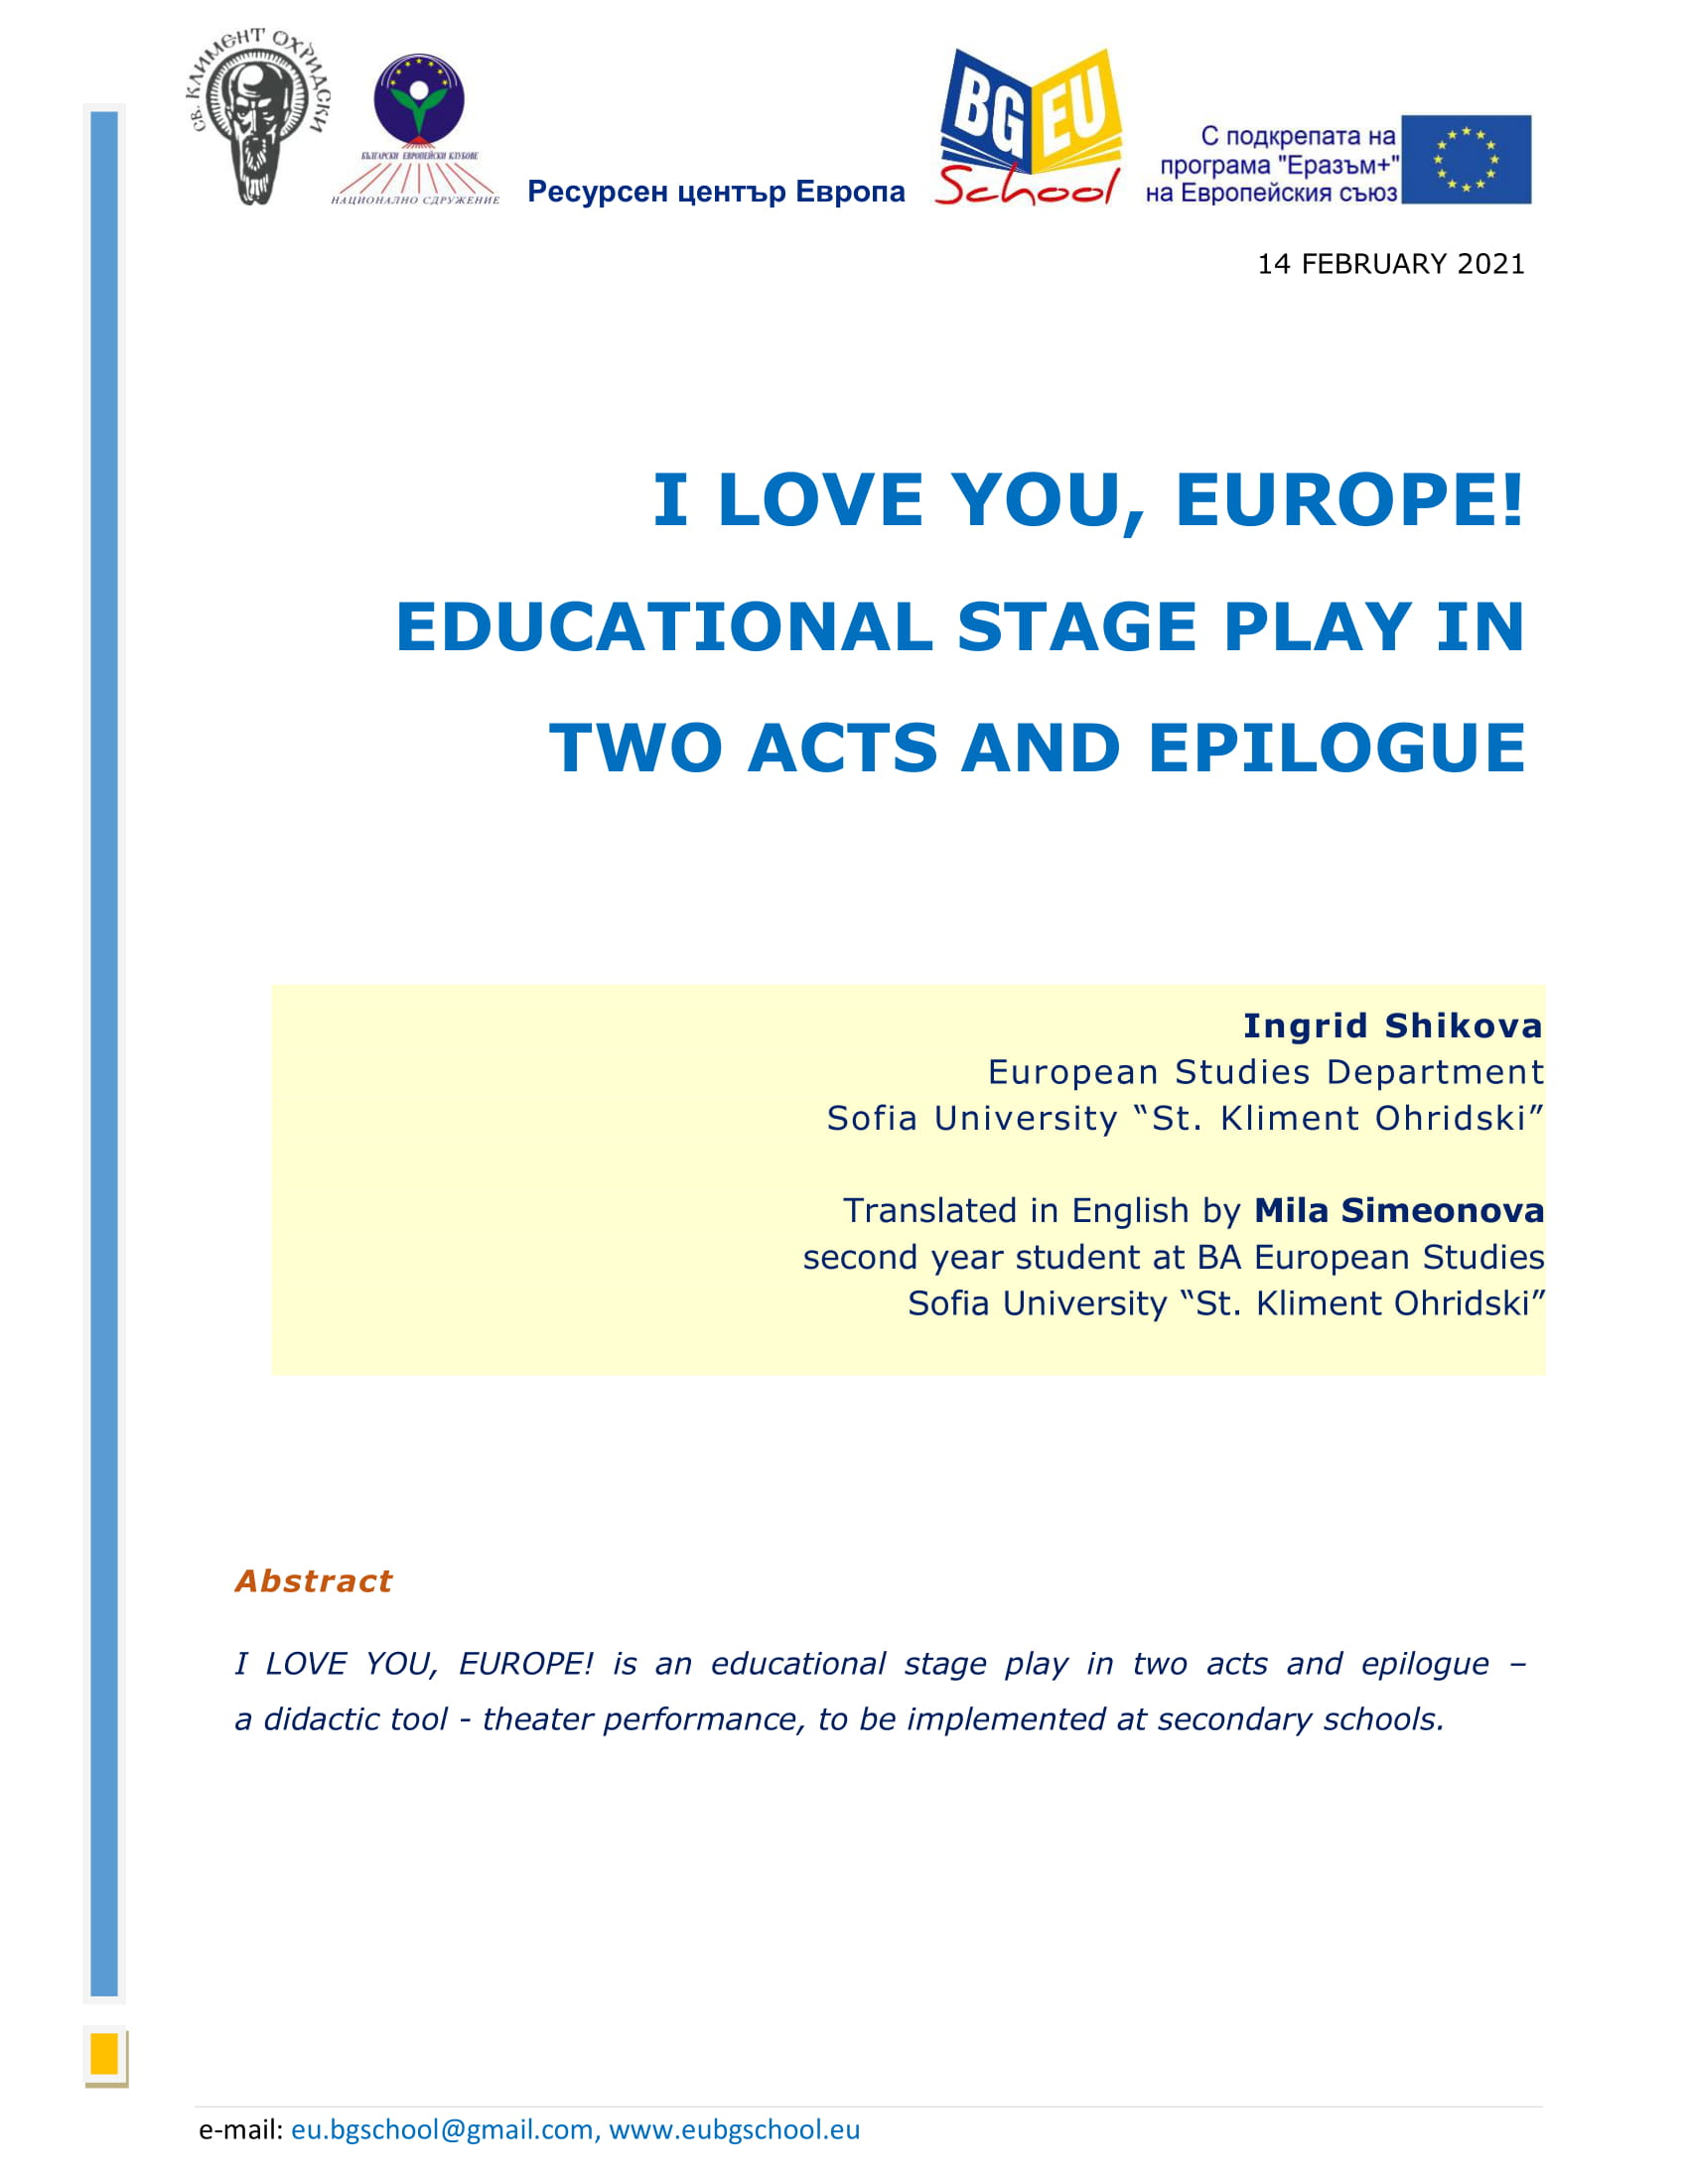 I LOVE YOU, EUROPE! EDUCATIONAL STAGE PLAY IN TWO ACTS AND EPILOGUE